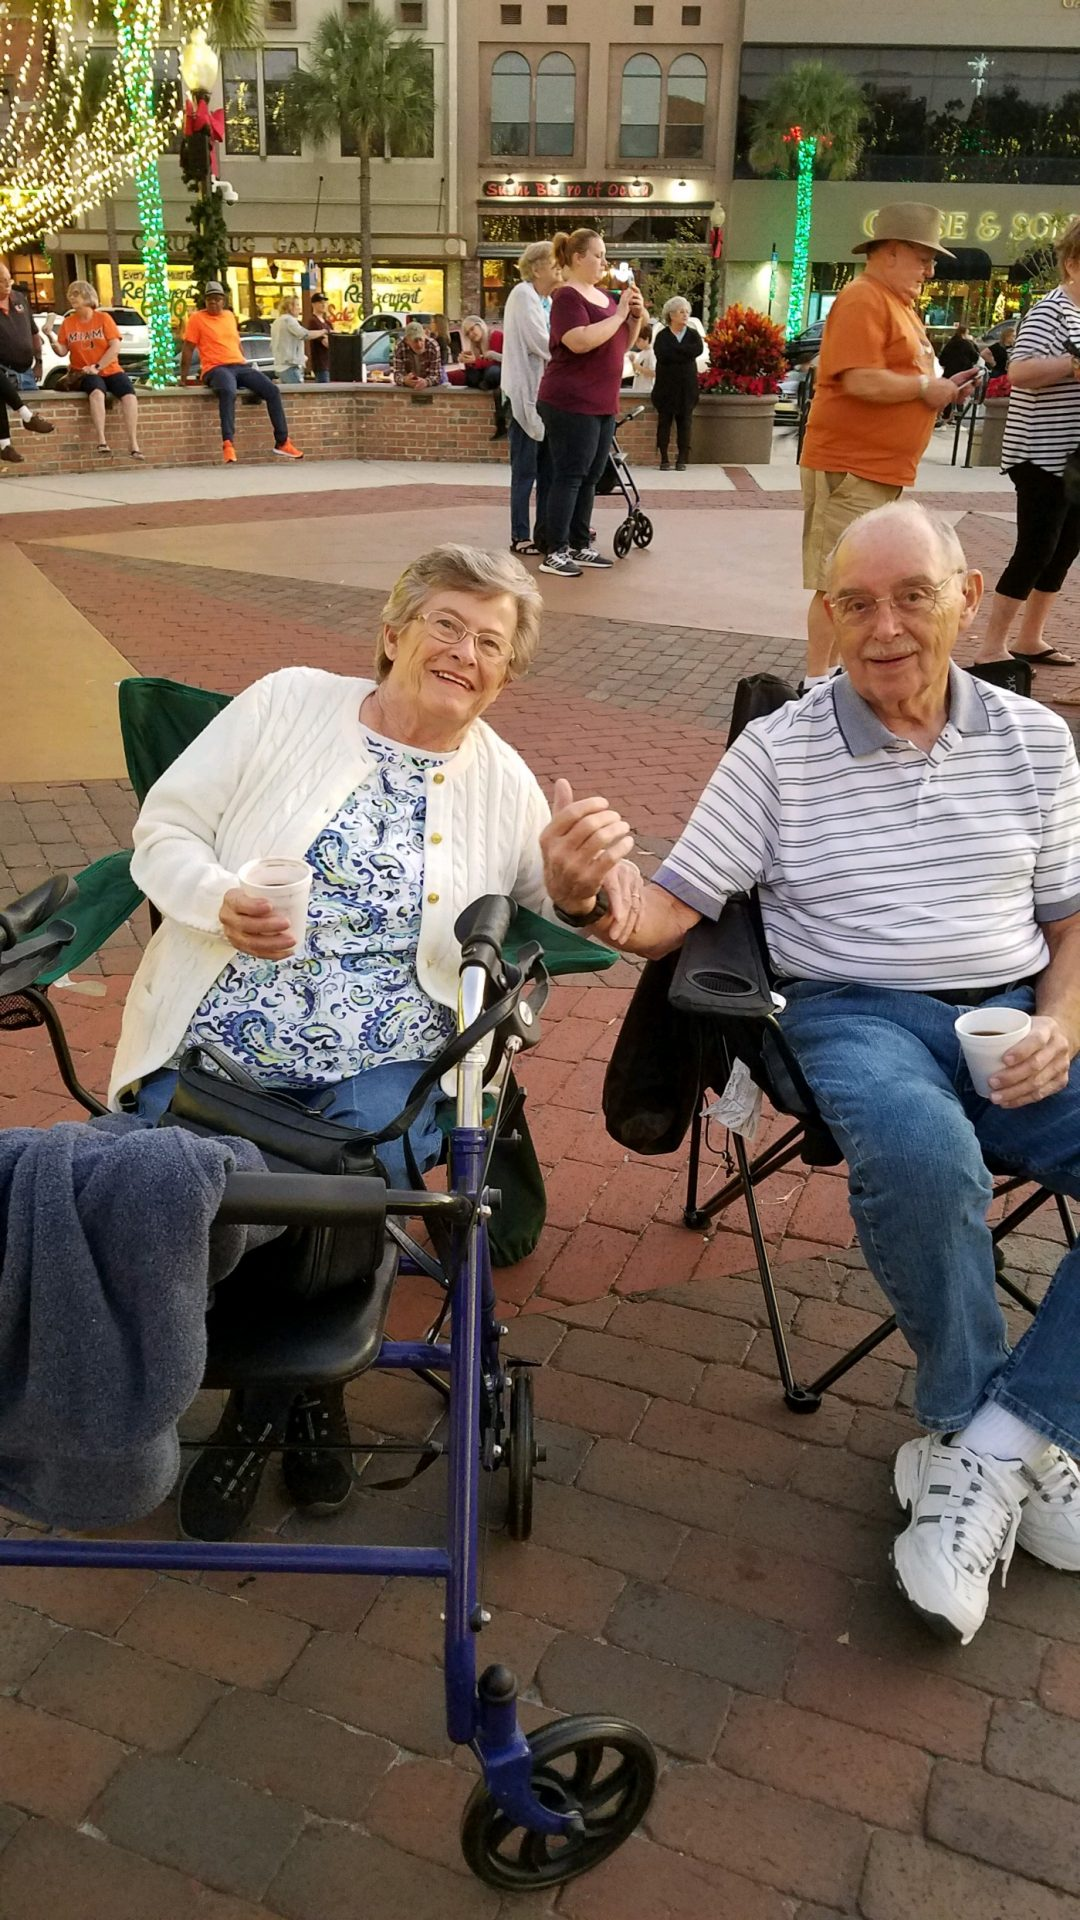 Mom & Dad at the square in Ocala